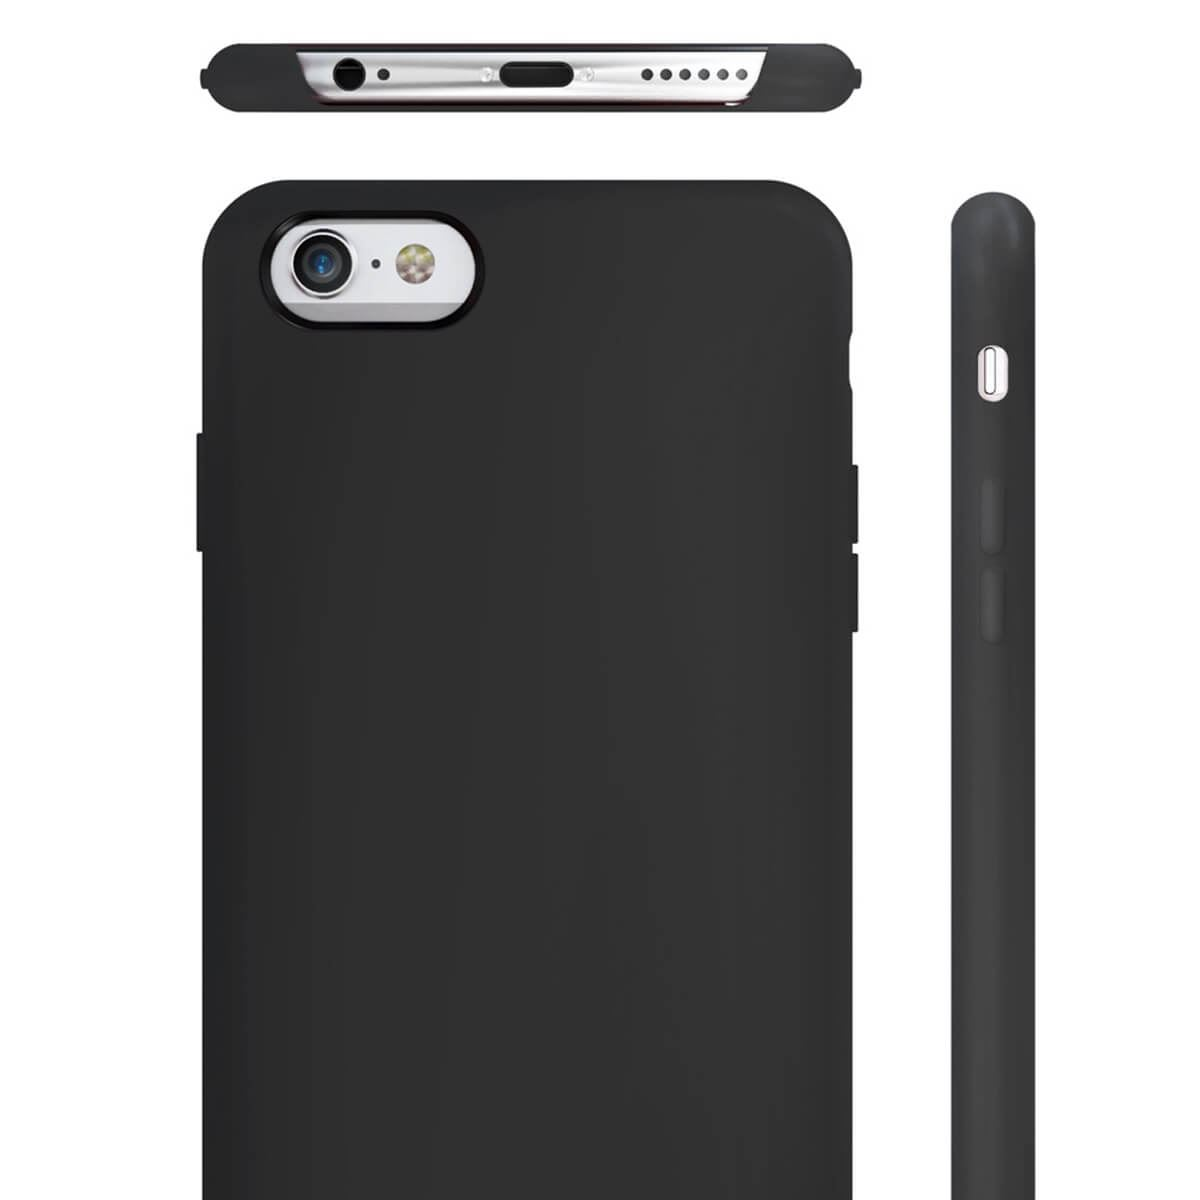 Liquid-Silicone-Phone-Case-For-Apple-iPhone-Soft-Shockproof-Matte-Back-Cover thumbnail 13